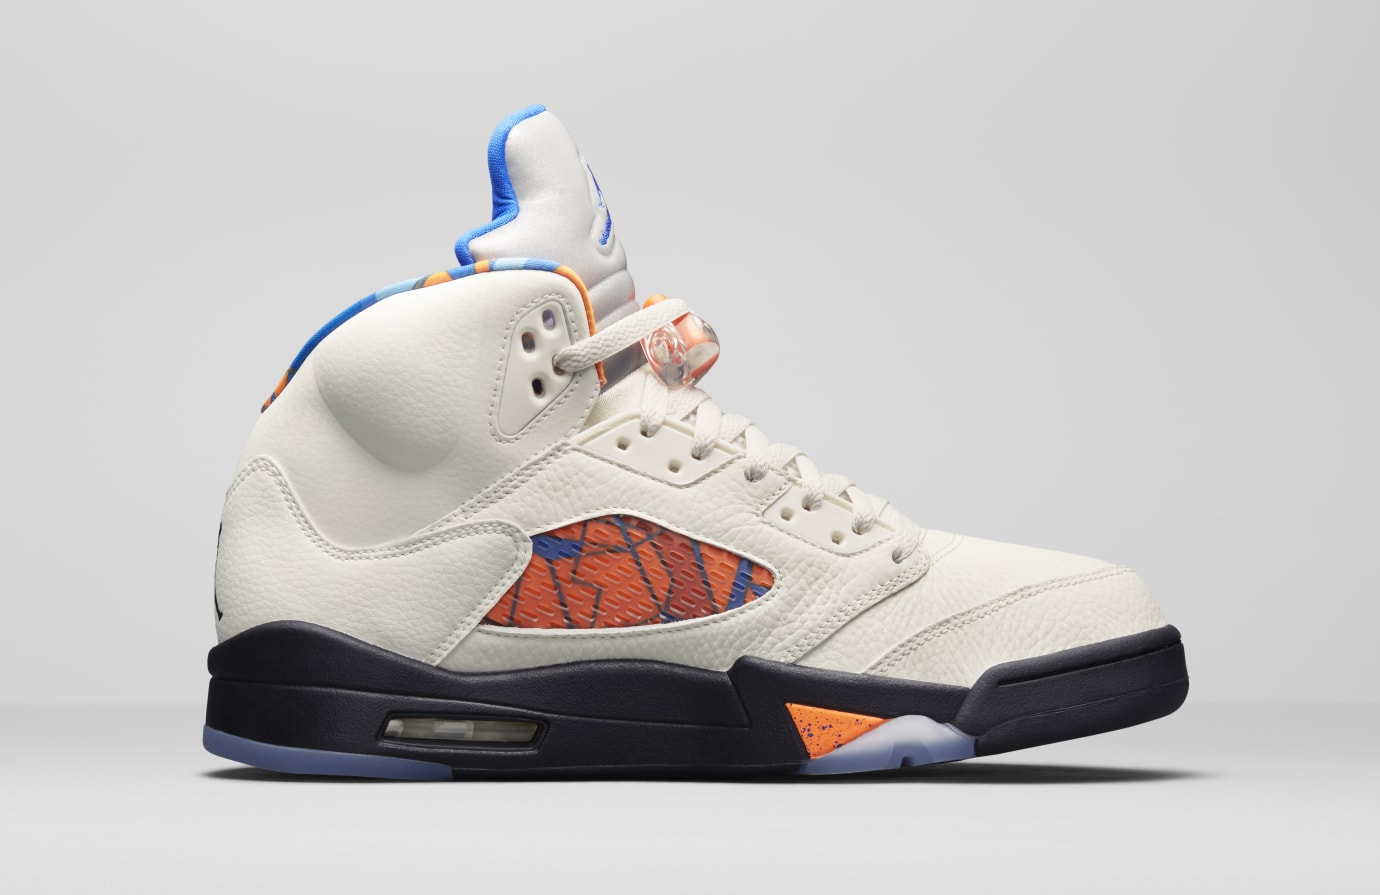 e35869ae76a9 Air Jordan 5 V Sail Orange Peel Black Hyper Royal Release Date ...